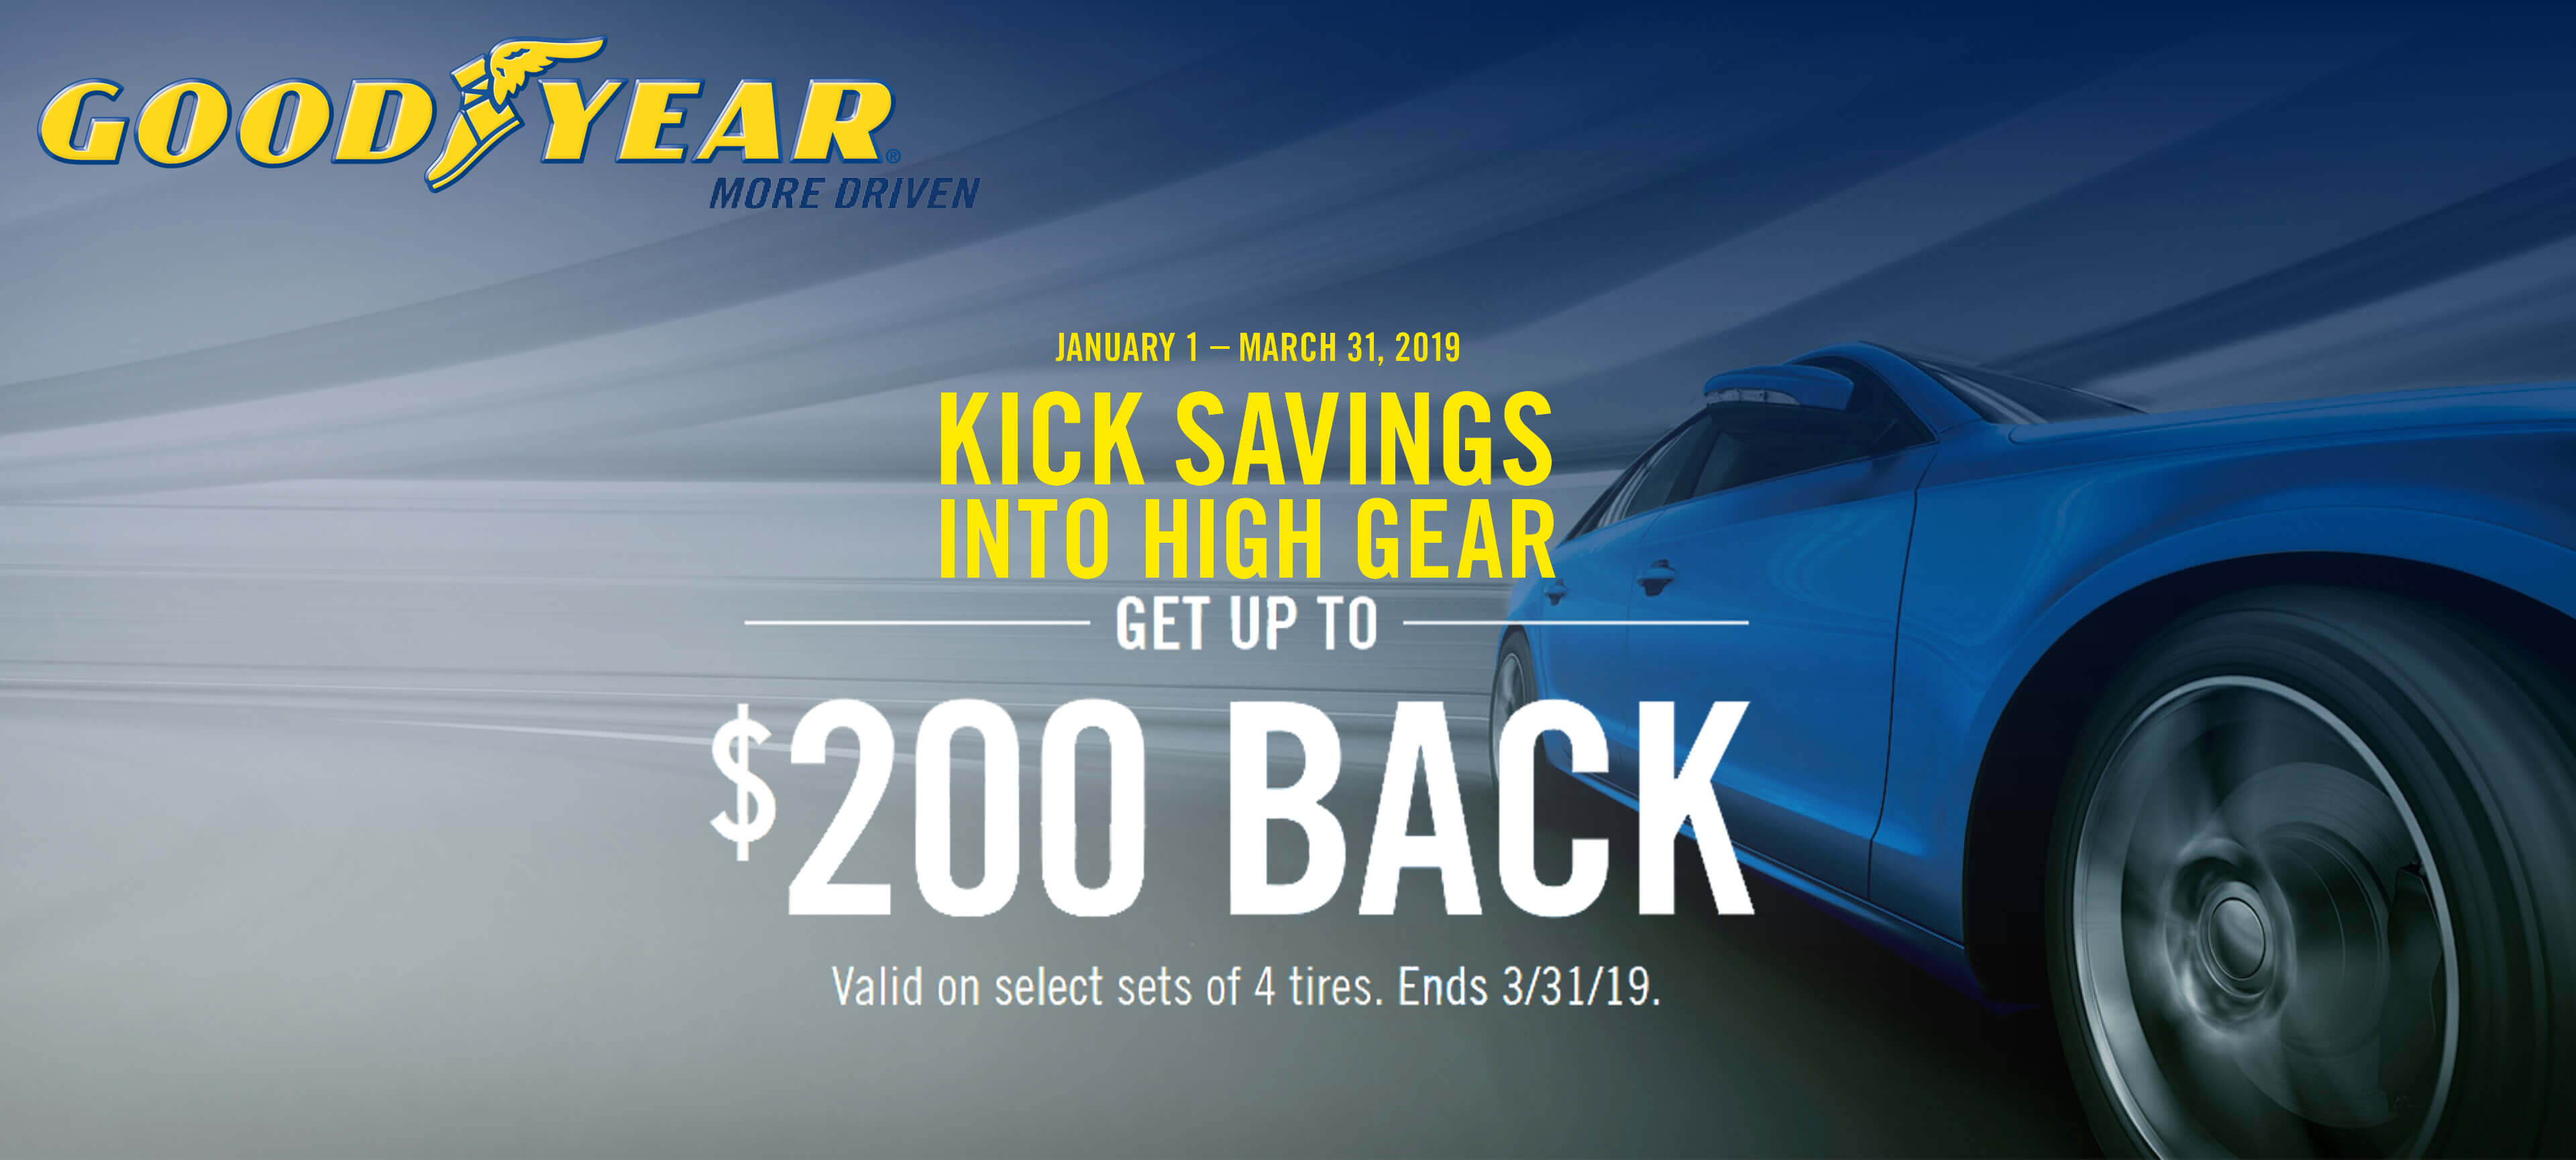 Goodyear Windshield Wipers >> Up To $200 Back In Rebates on Select Sets of 4 Goodyear ...